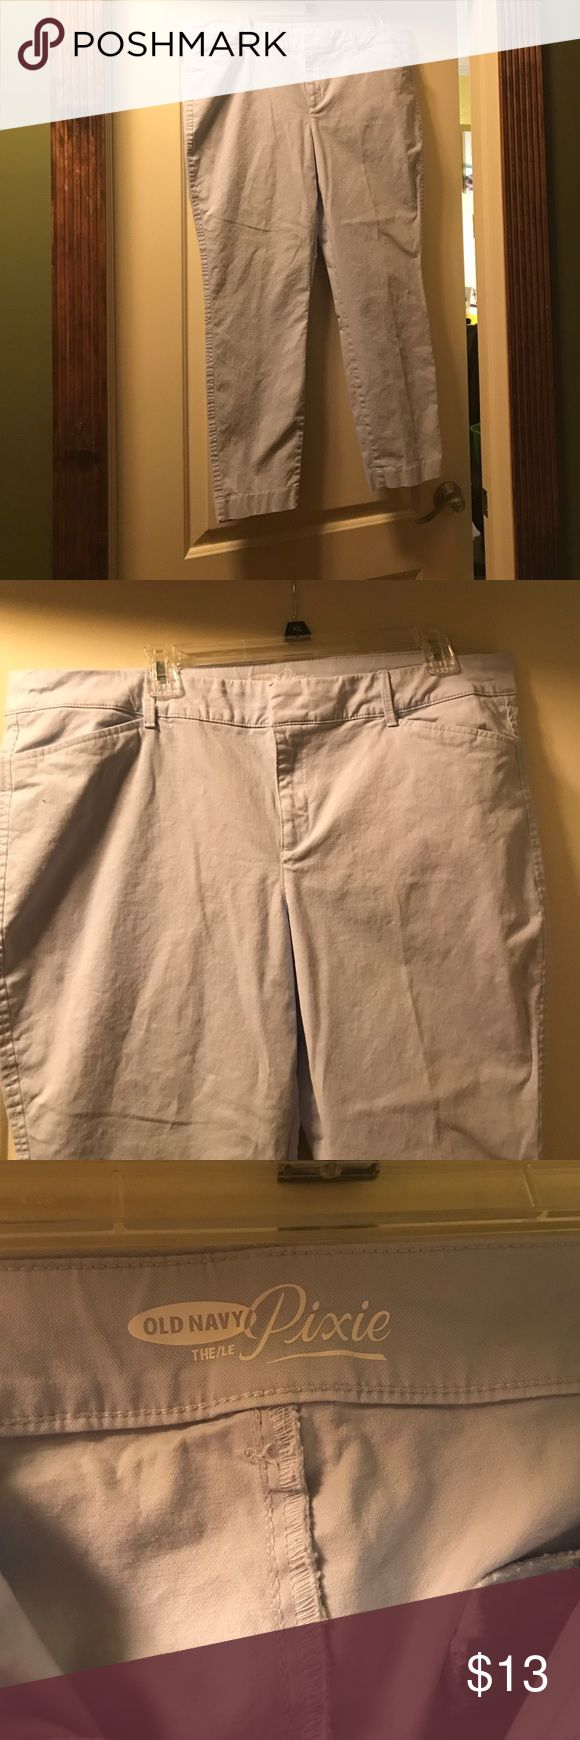 Pixie Style Chinos for Women Excellent condition chino Pants by Old Navy - Pixie Style.  Color is light blue size 16.  Very cute and flattering.  Thank you! Old Navy Pants Ankle & Cropped